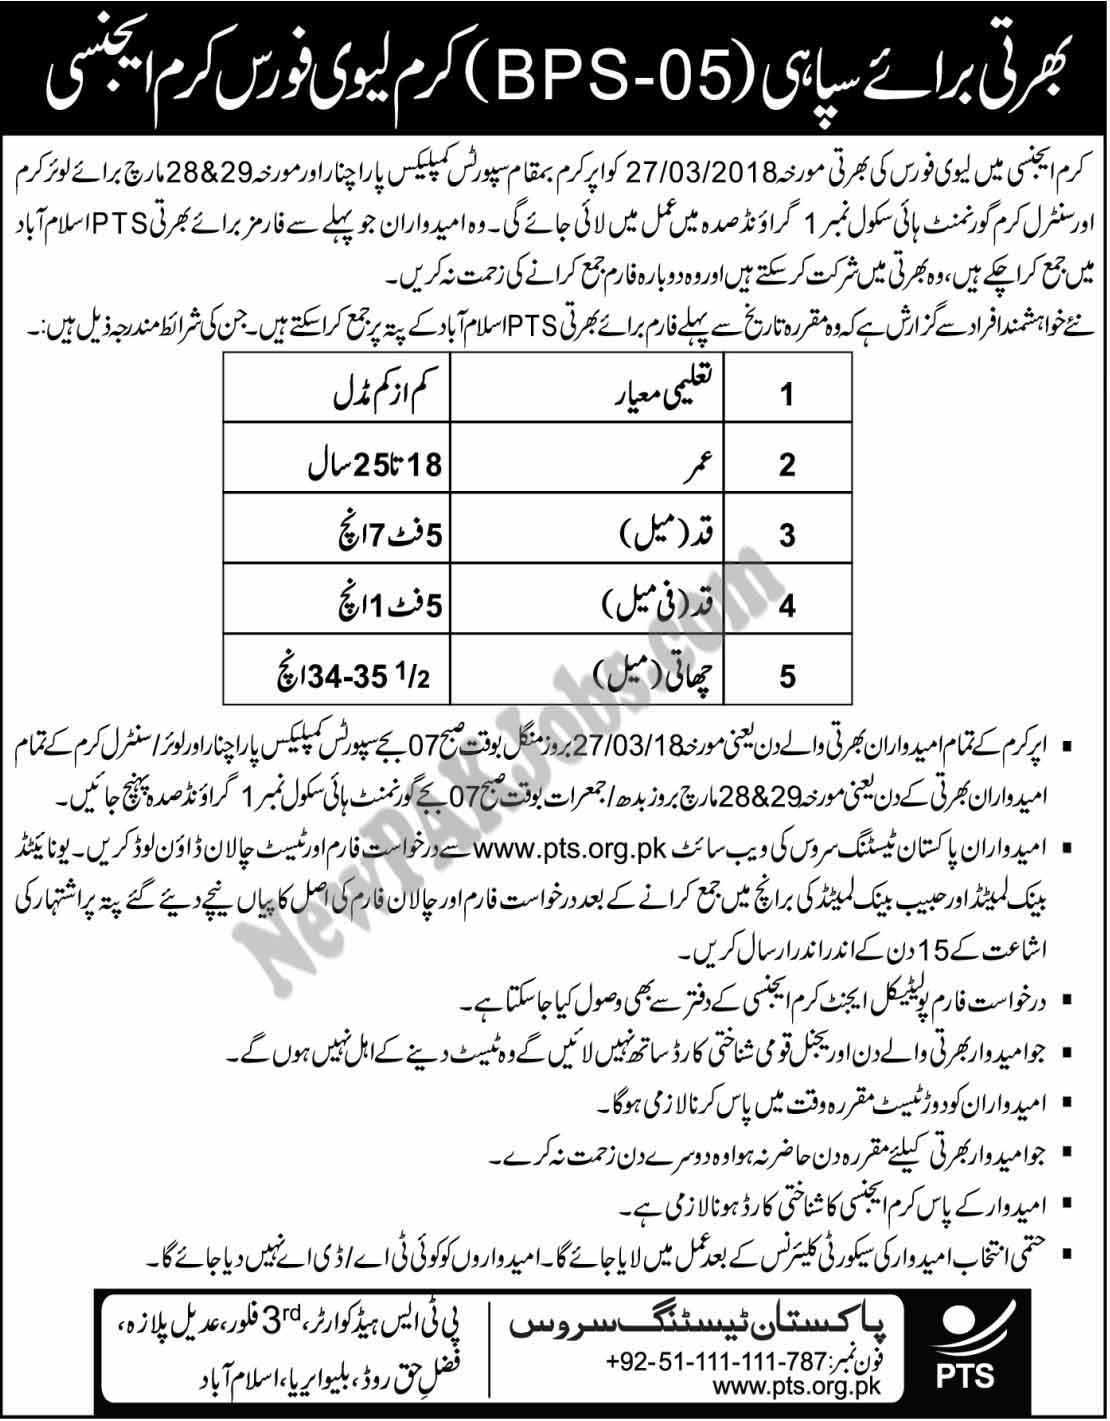 Latest 2018 PTS Jobs in Levies Forces Jobs In Kurram Agency Male and Female